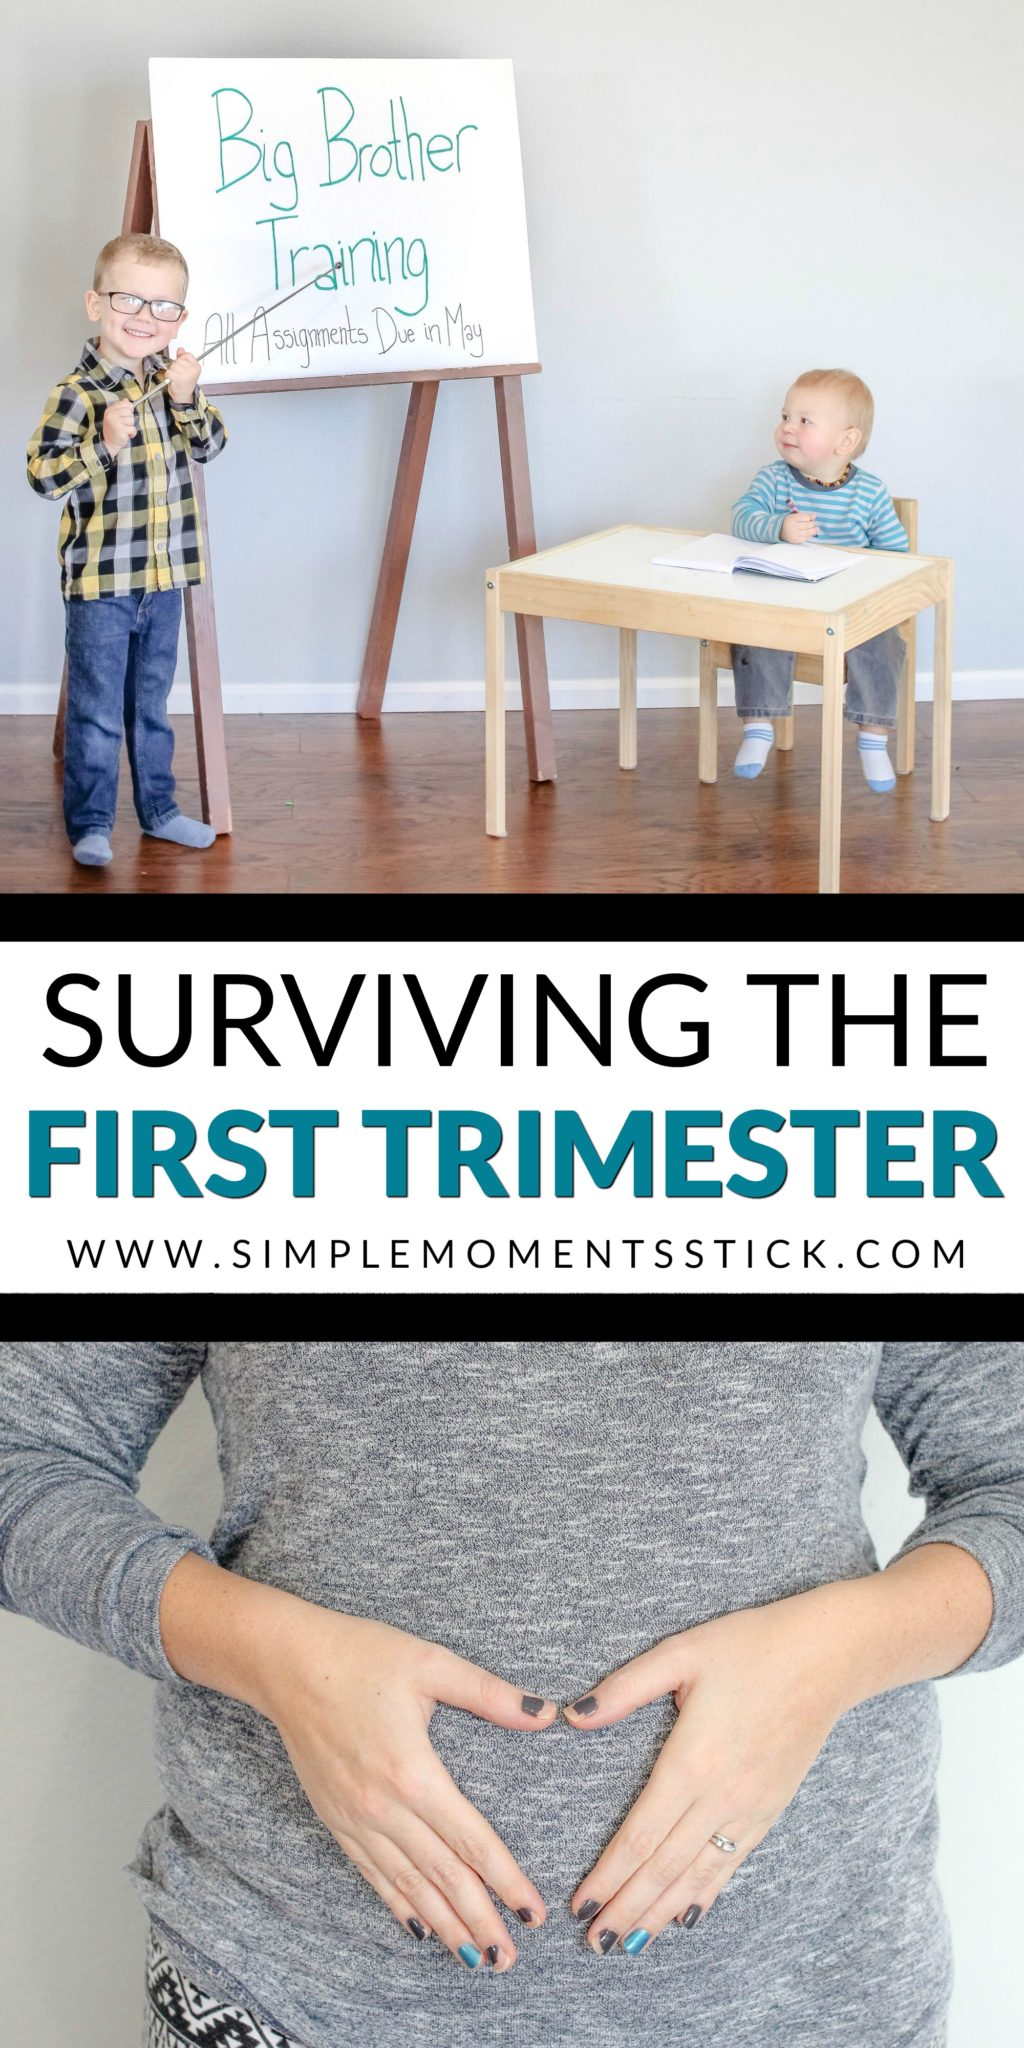 Tips on surviving the first trimester